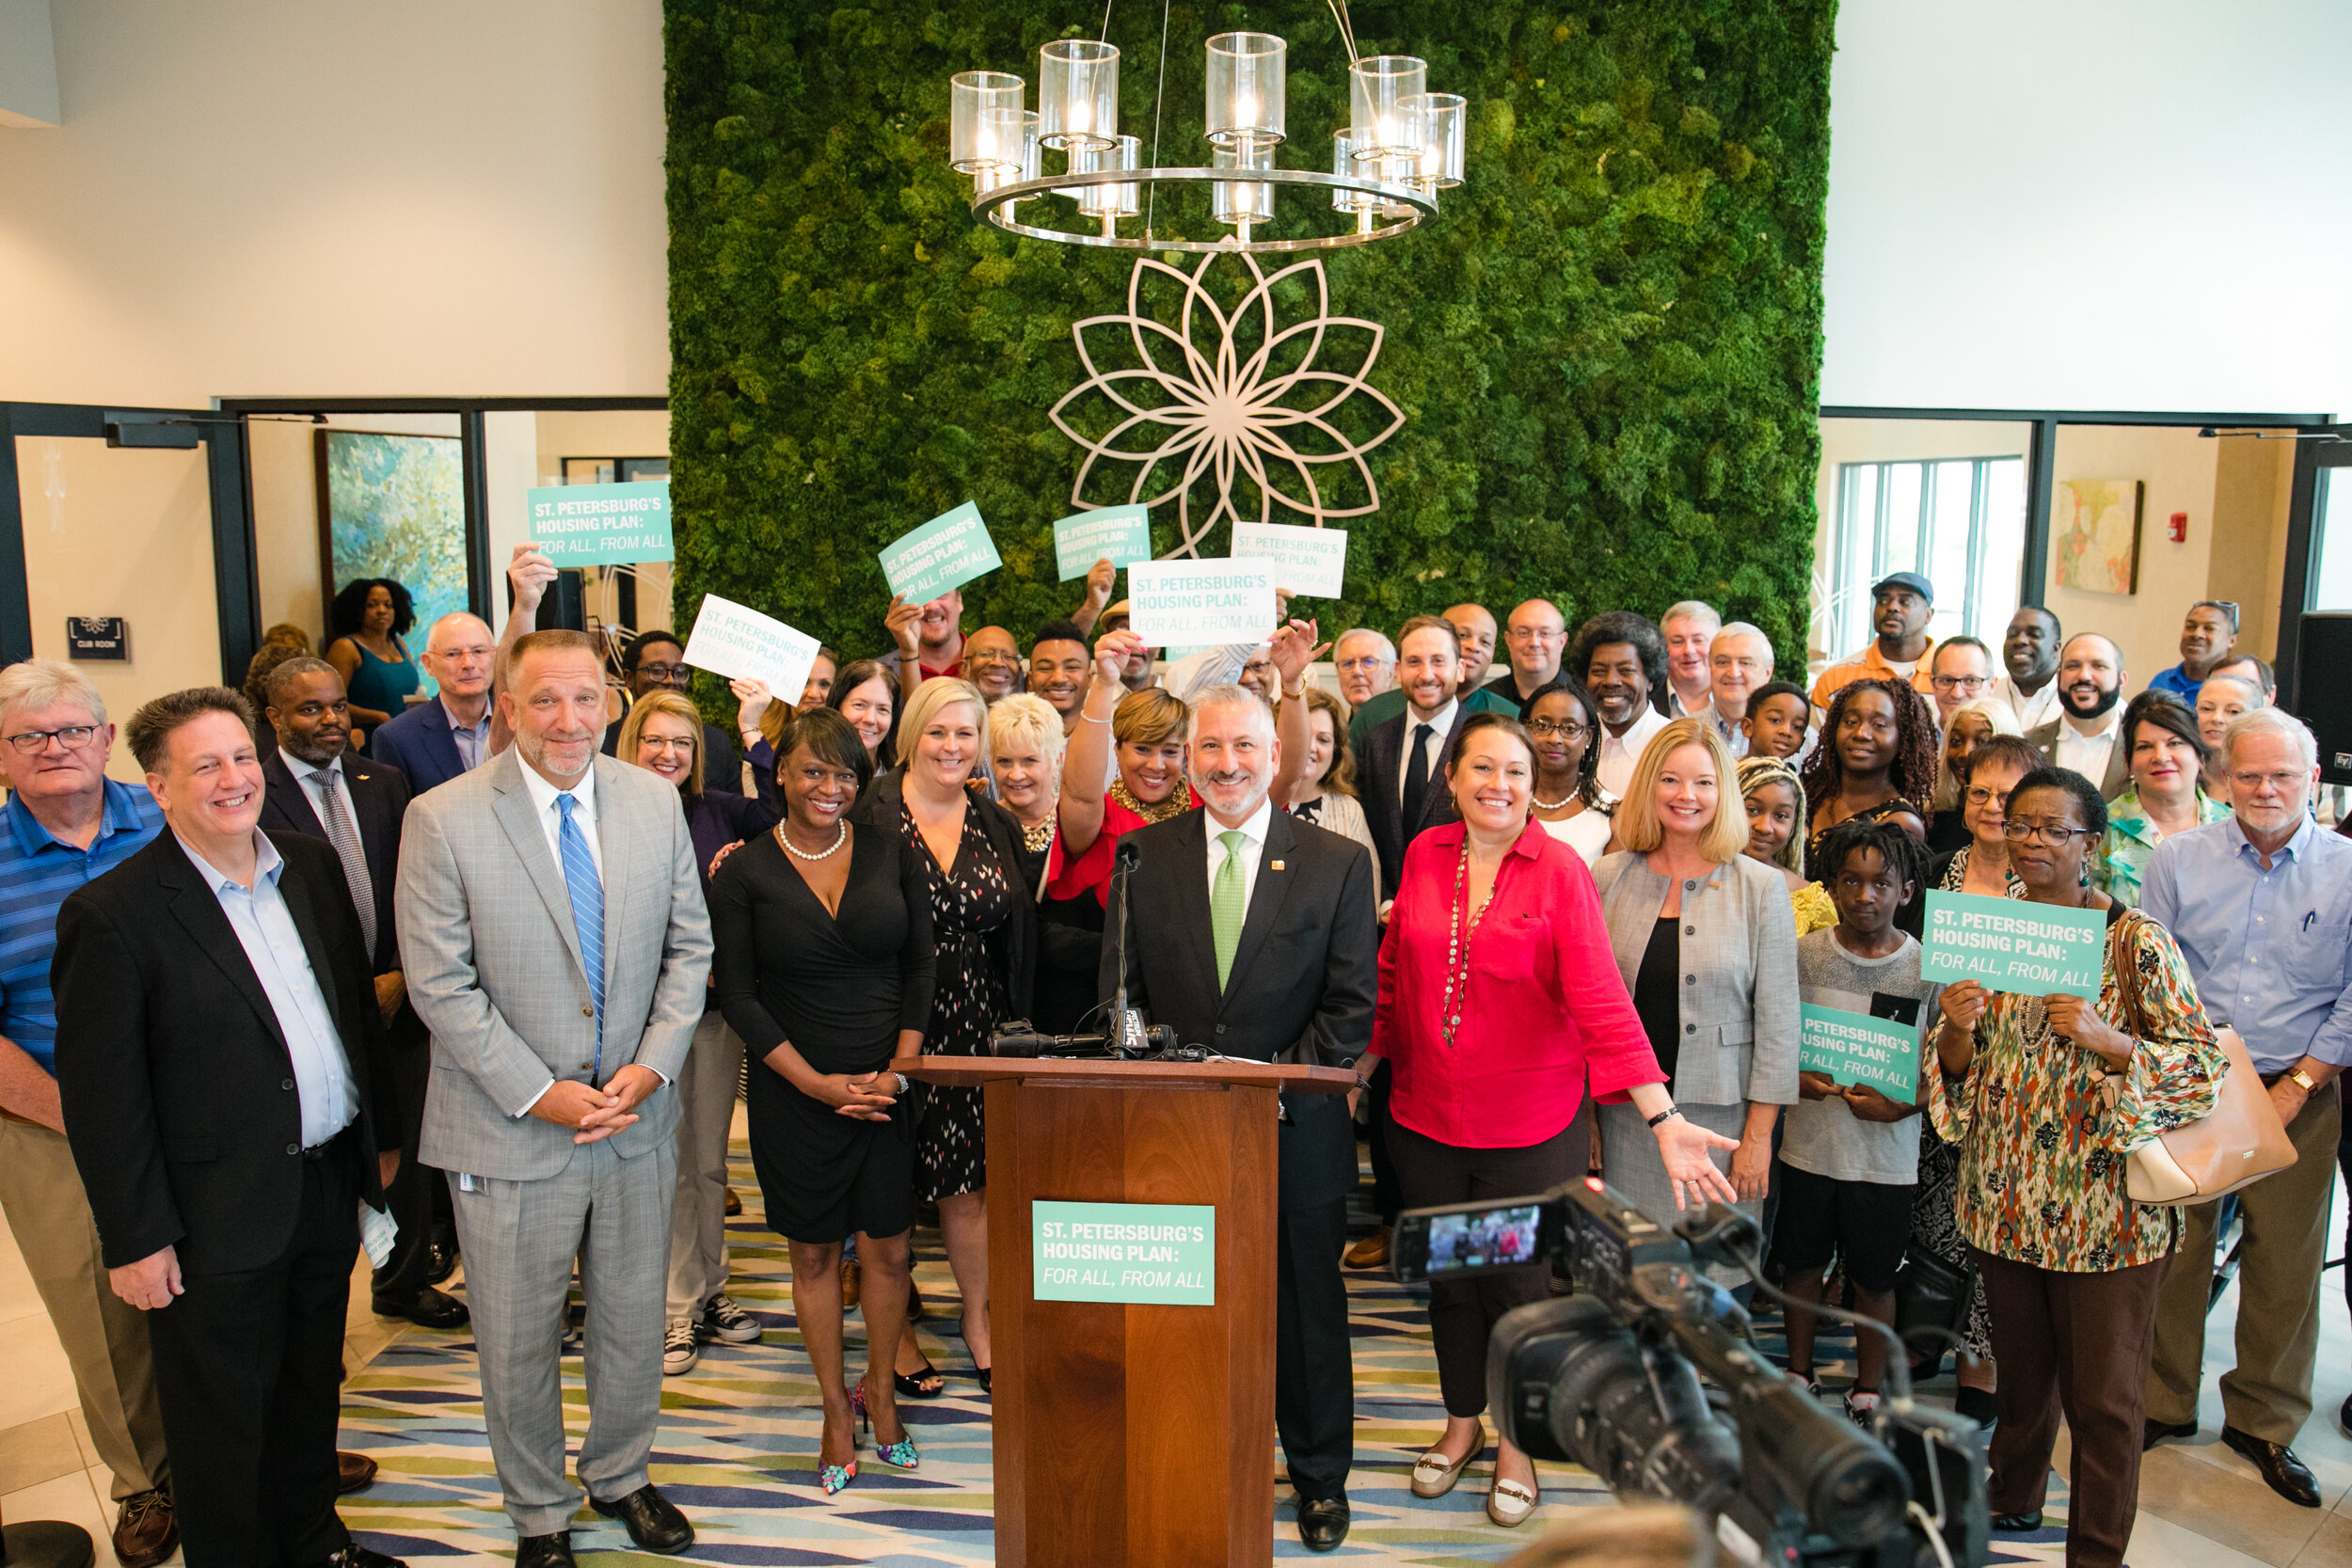 In July, Mayor Kriseman was joined by members of City Council to announce a 10-year, $60M affordable housing plan. Land Development Regulation changes are part of the city-wide effort.